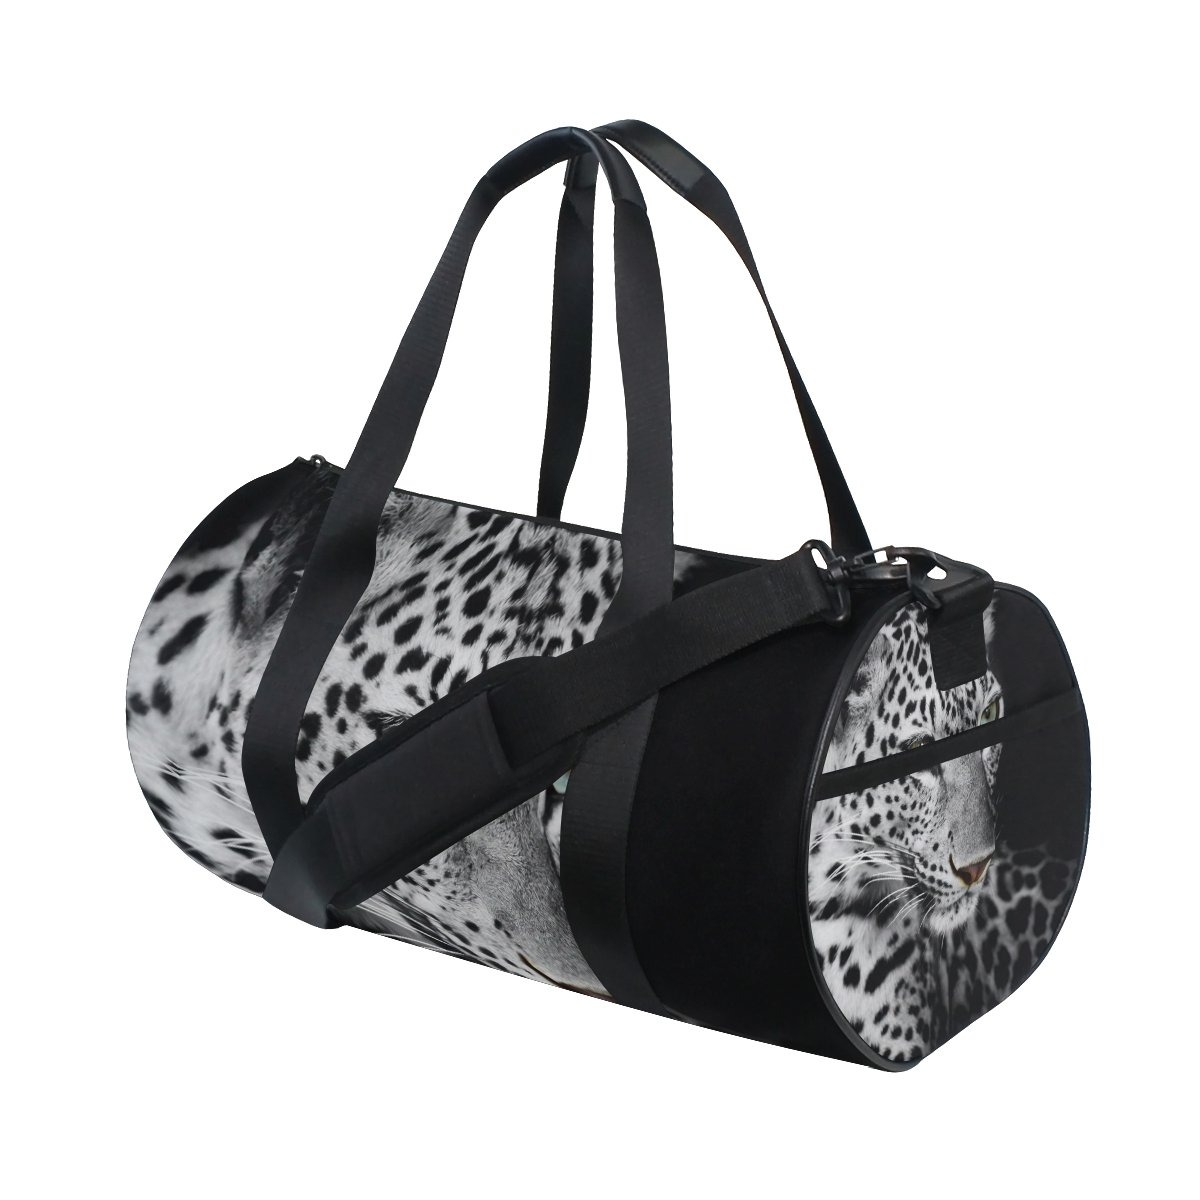 Leopard Pattern Print sports Duffel Bags, Travel Gym Fitness Bag